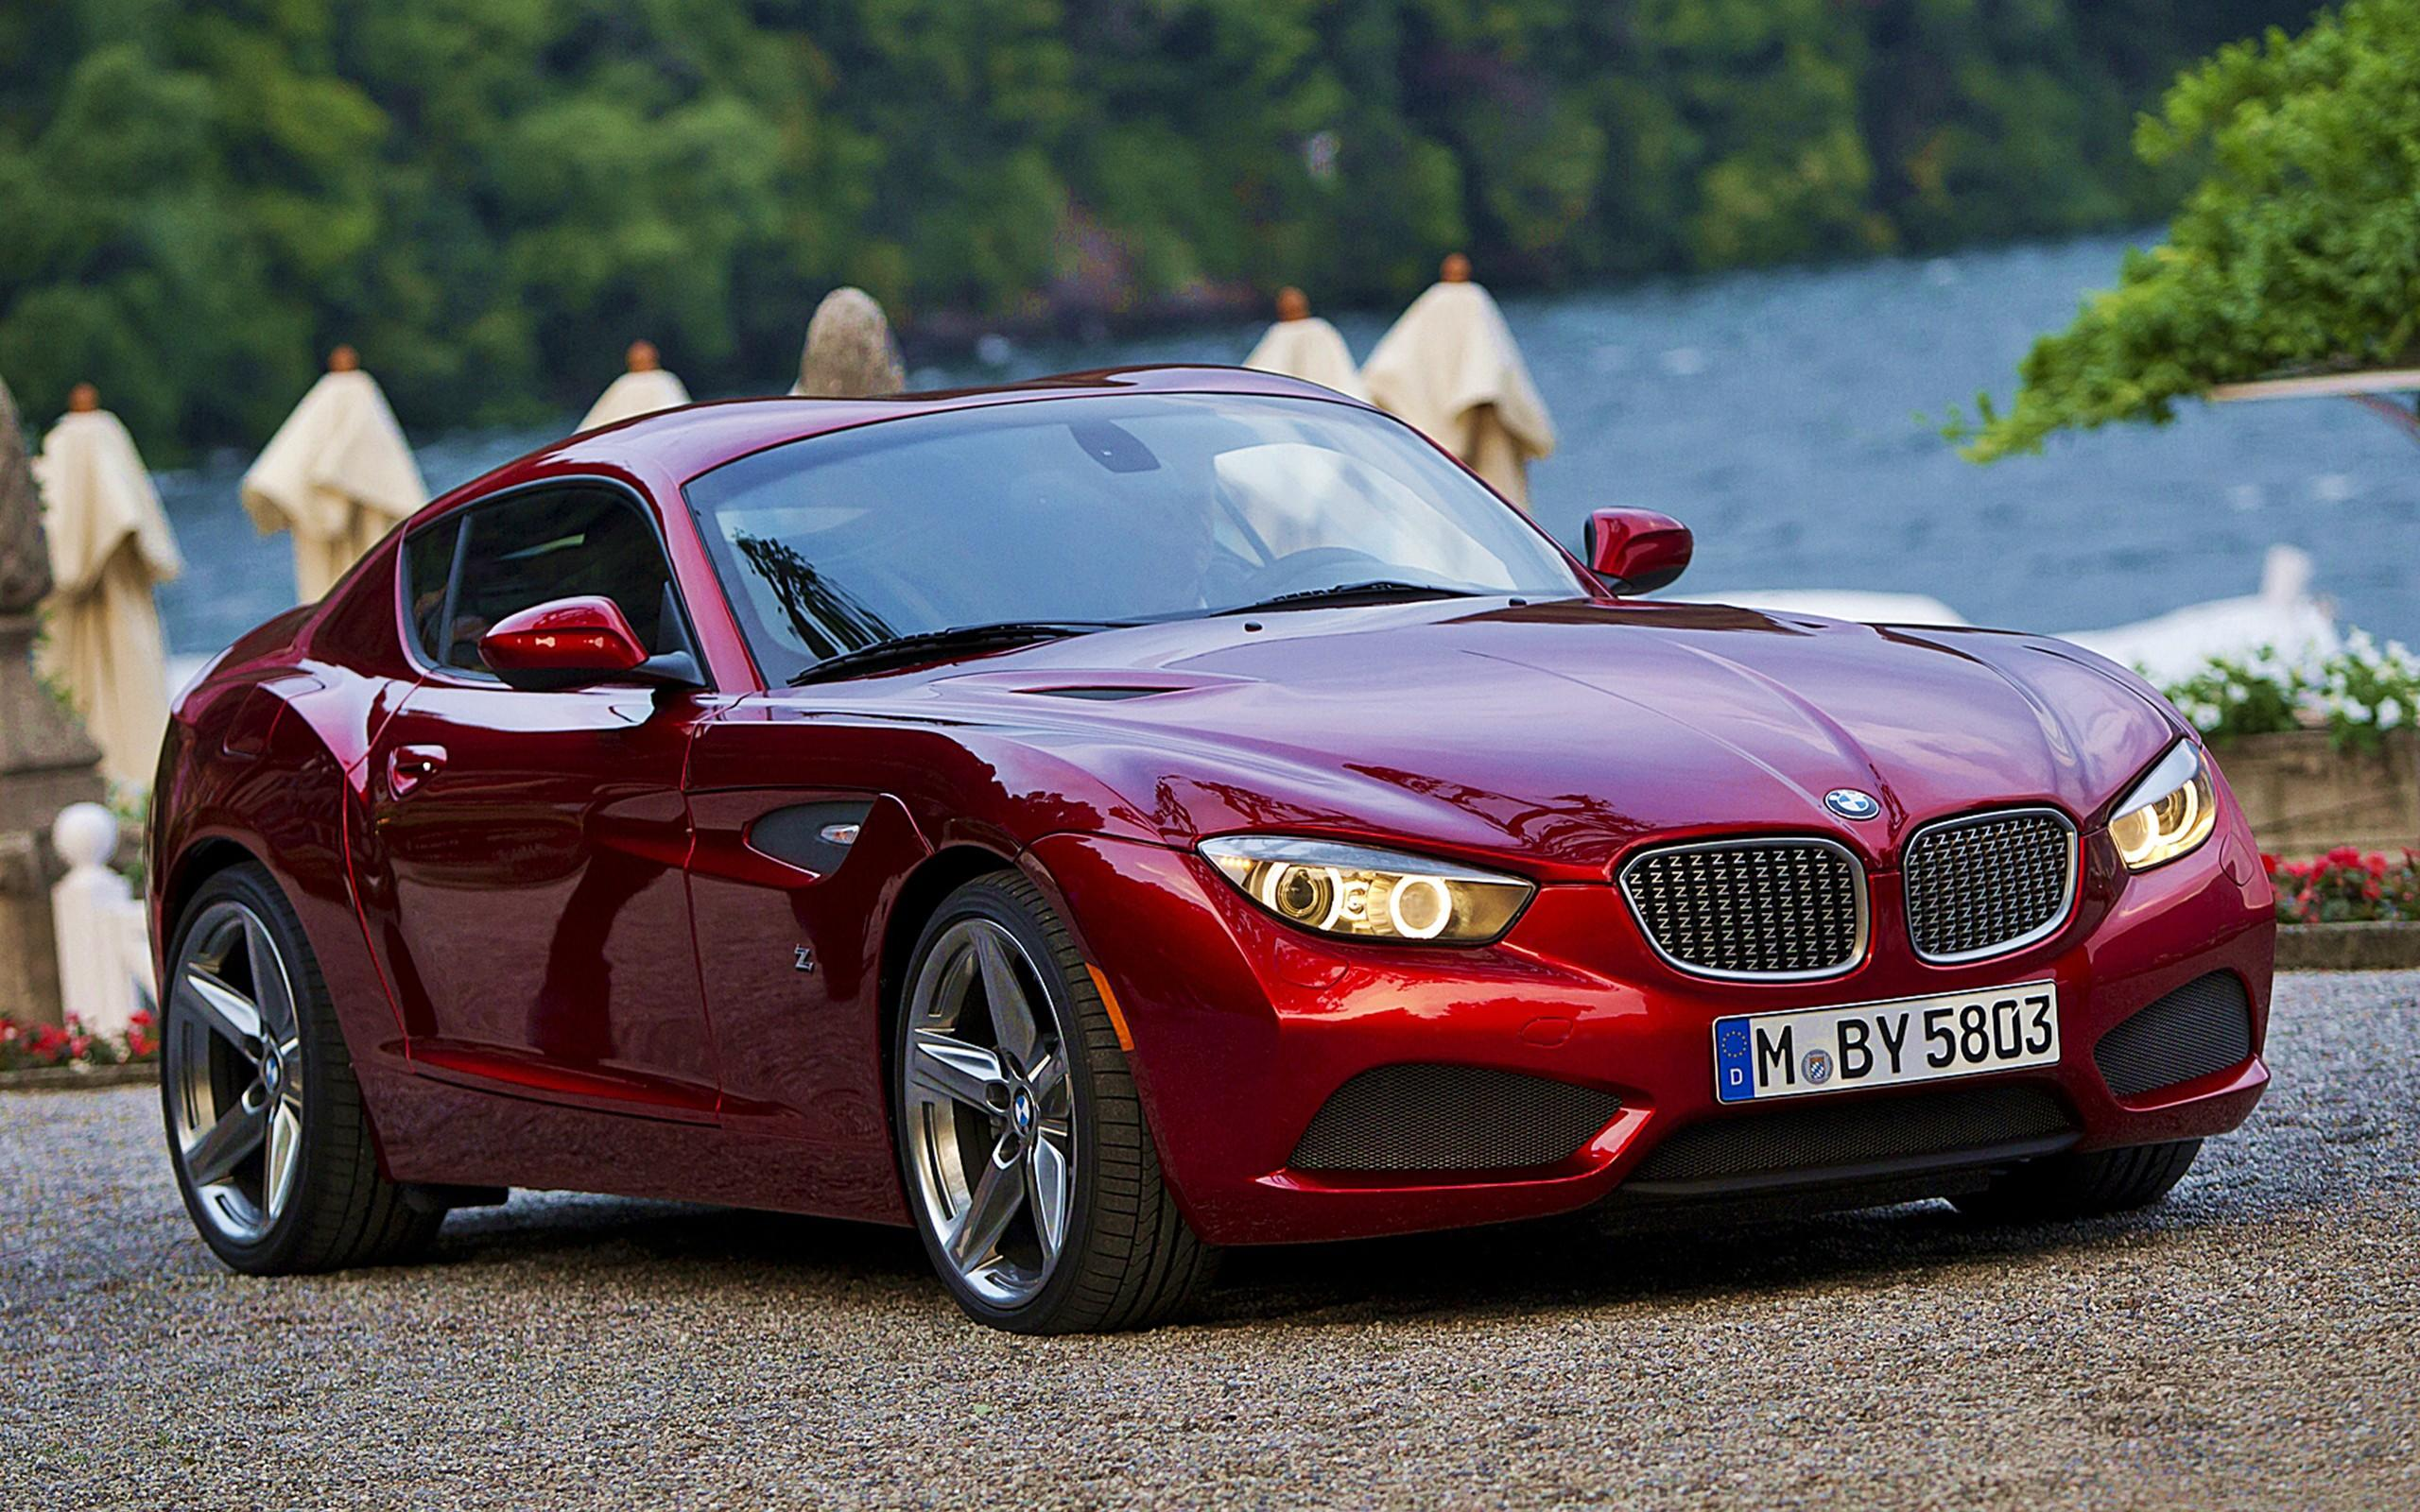 2560x1600 - BMW Zagato Coupe Wallpapers 22